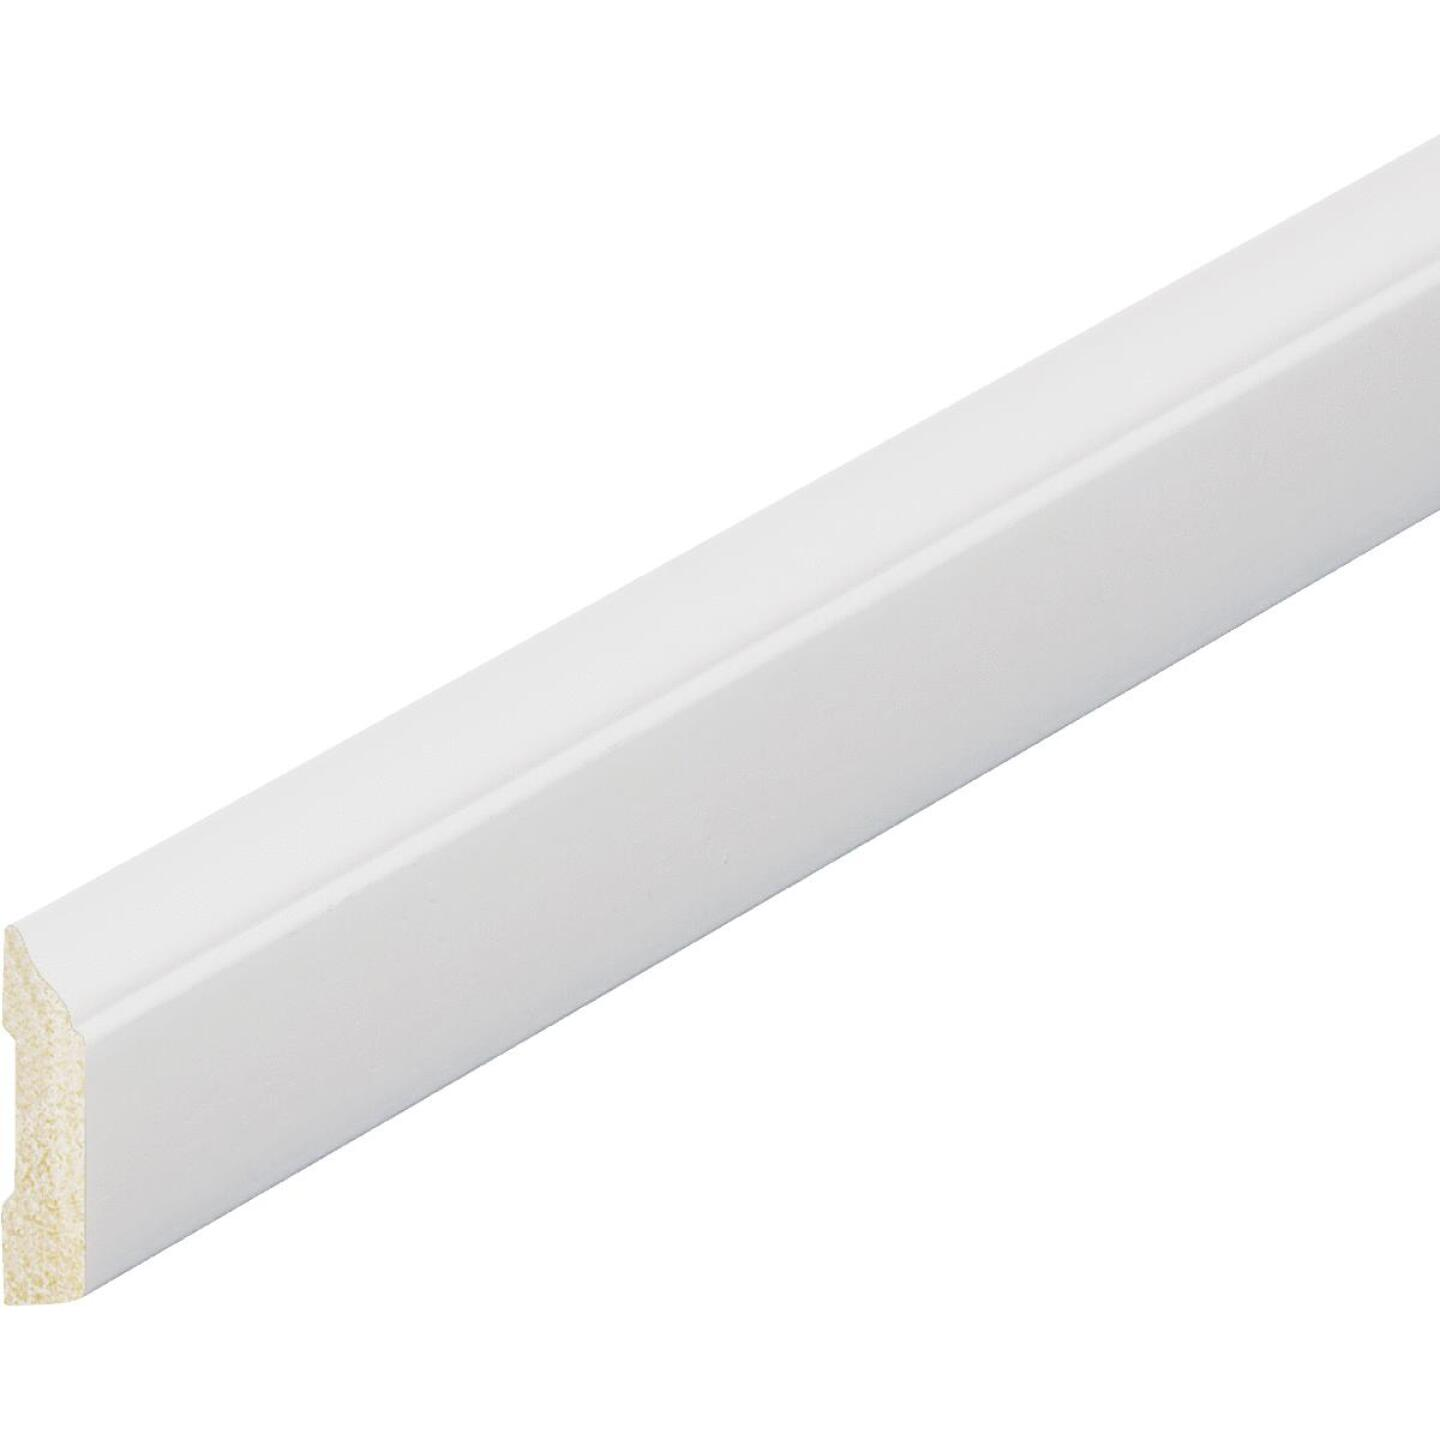 Inteplast Building Products 3/8 In. W. x 1-5/16 In. H. x 7 Ft. L. Crystal White Polystyrene Stop Molding Image 3